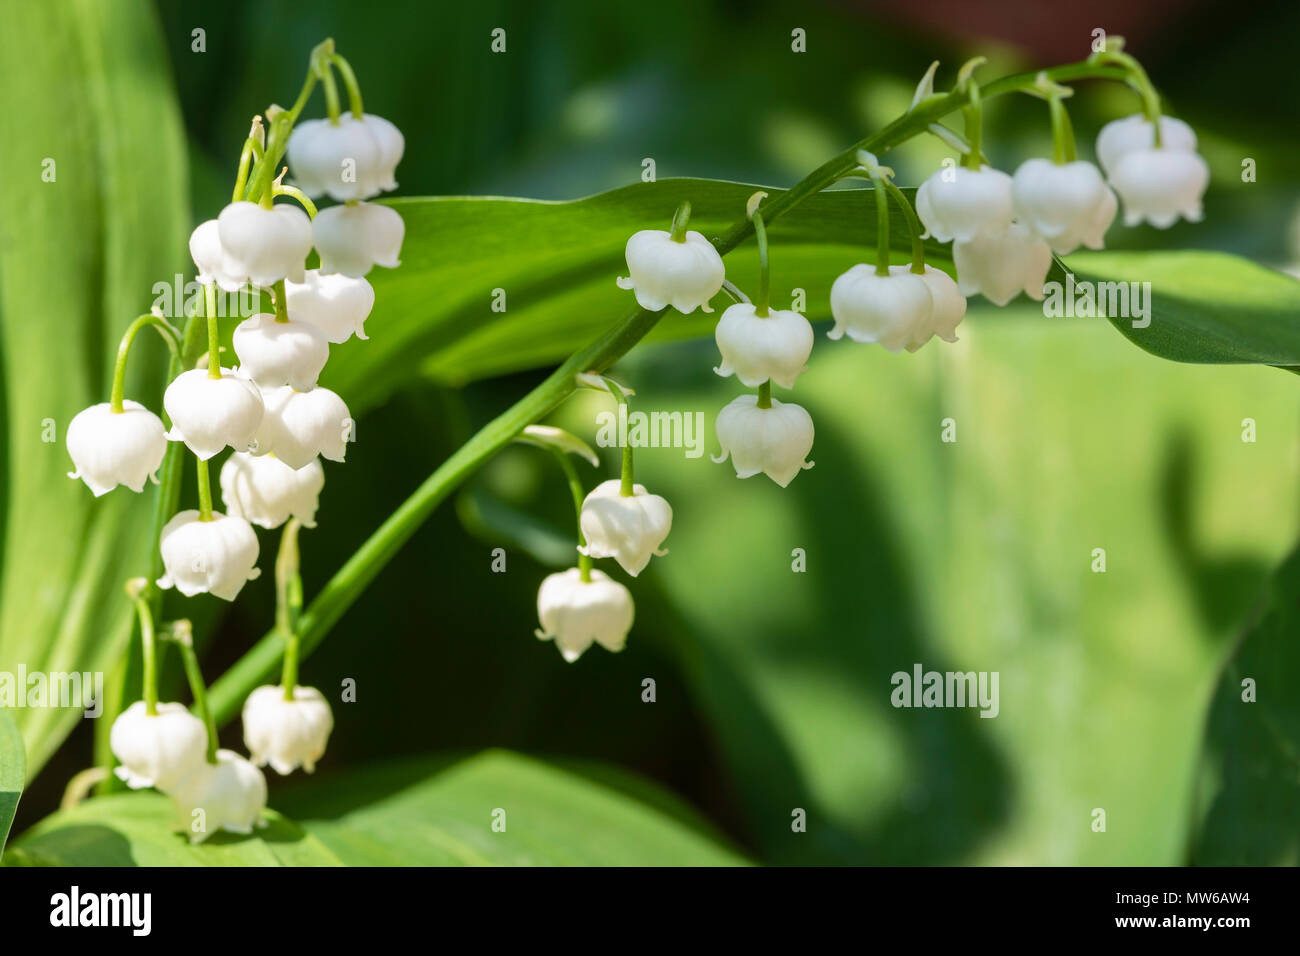 The alluring bell shaped flowers of Lily of the valley - Stock Image